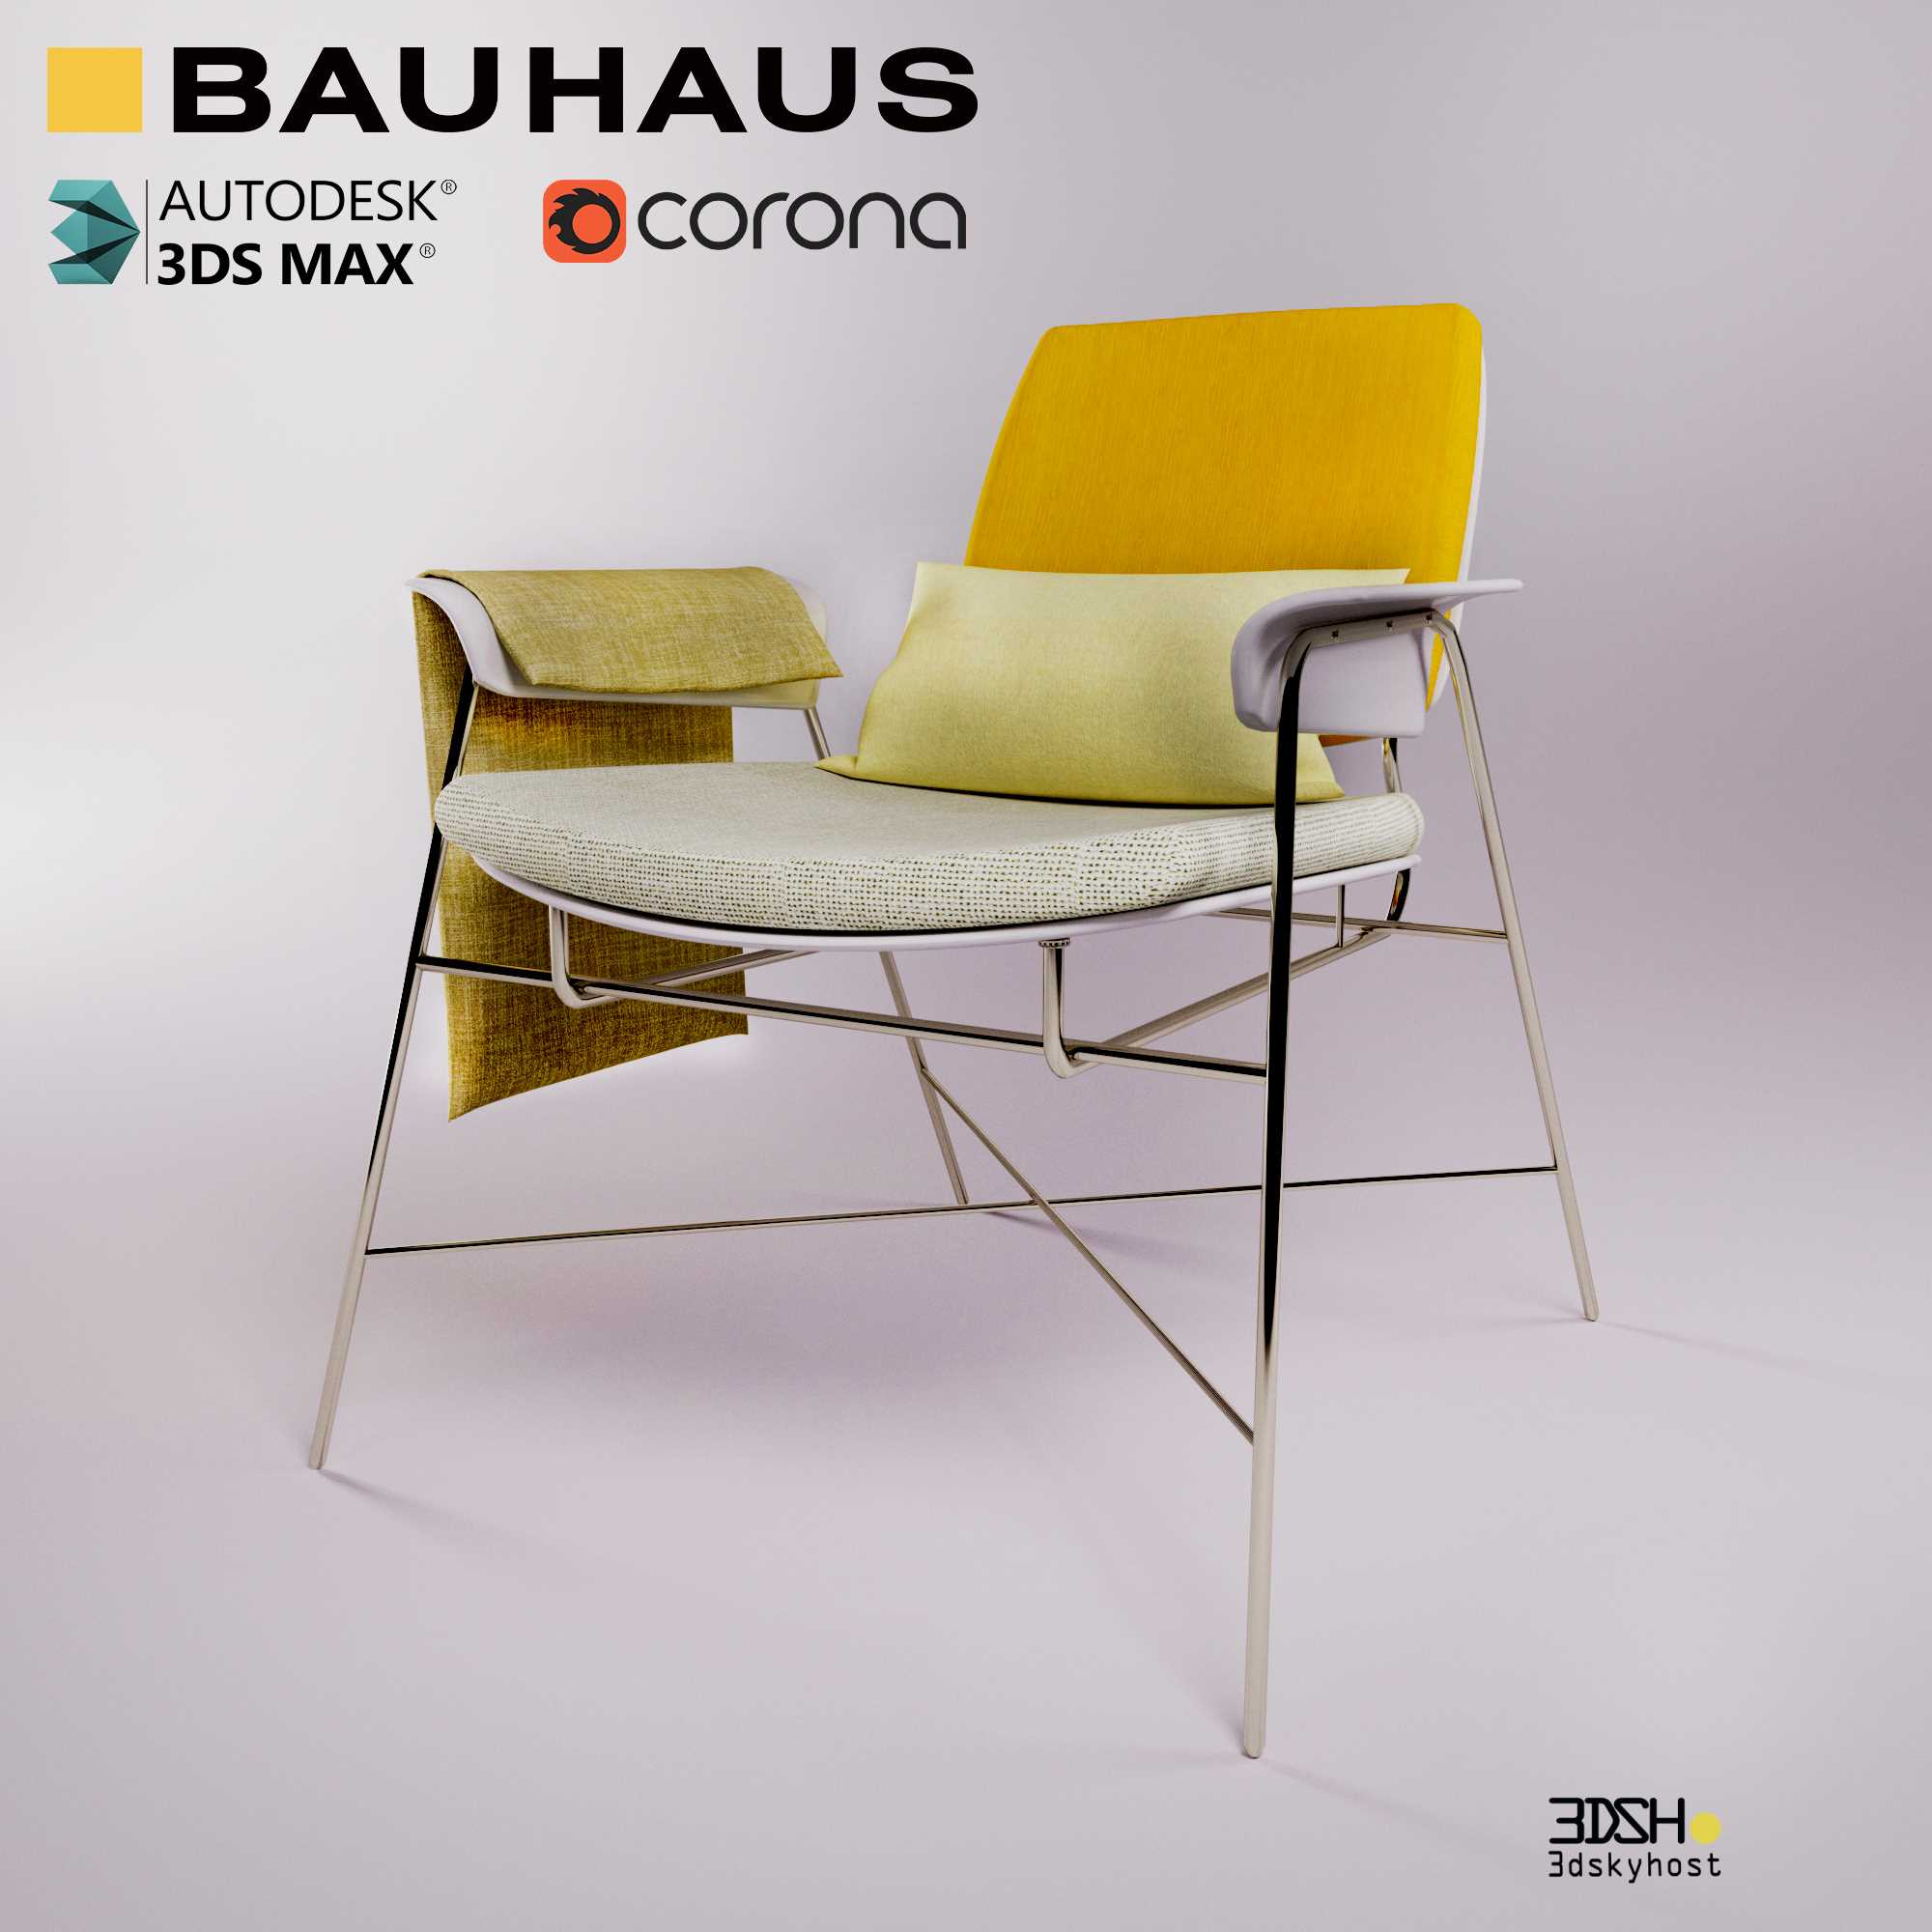 3dSkyHost: 3D Model Bauhaus Chair free download